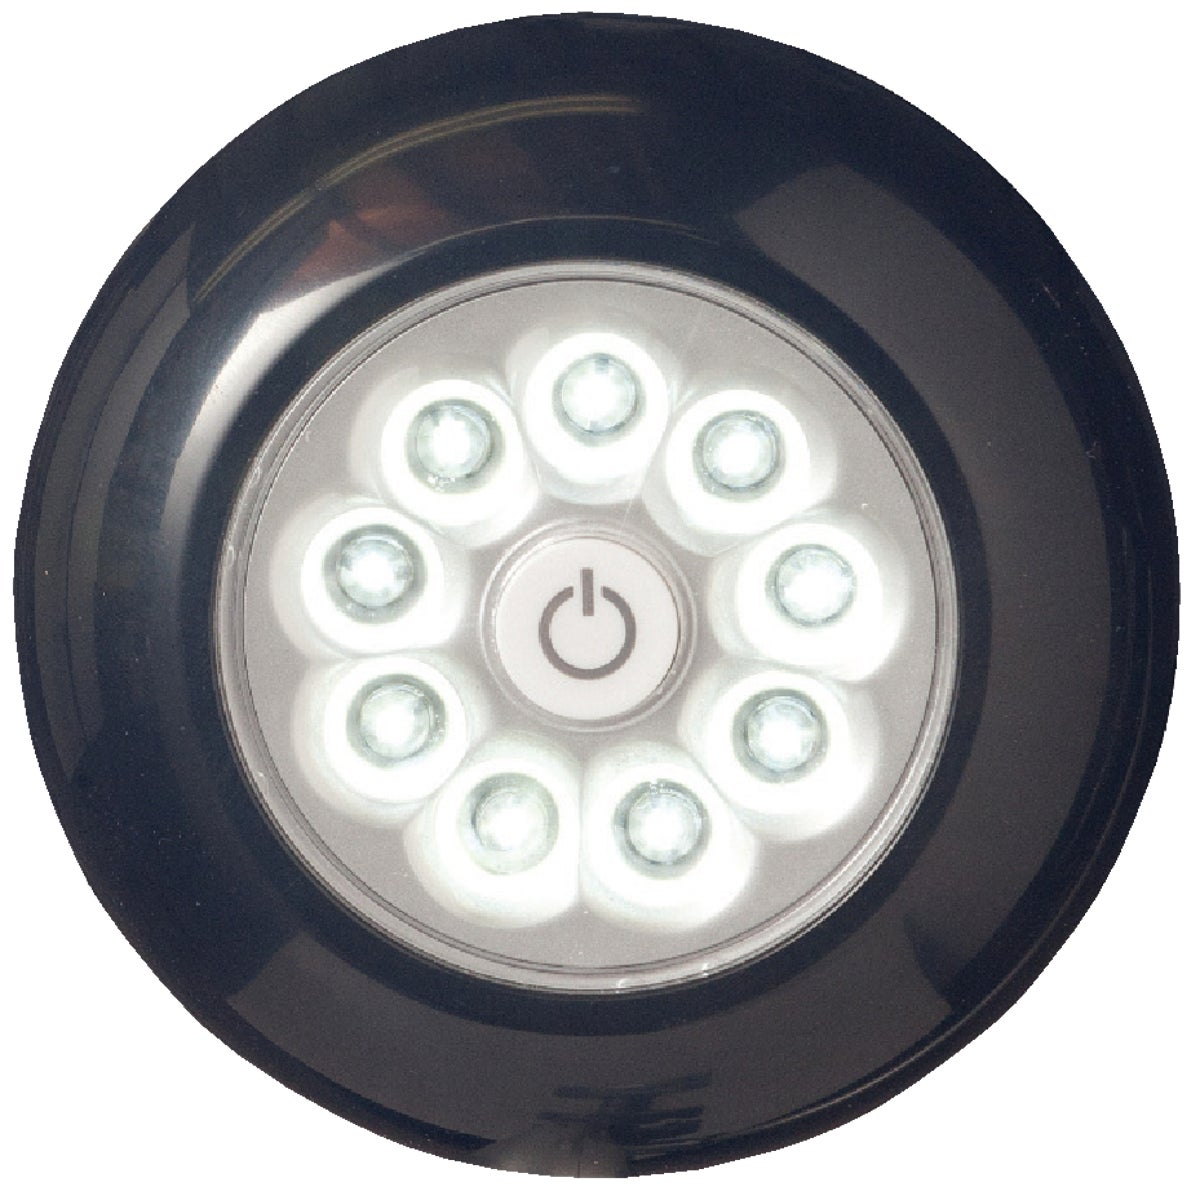 BLACK XB ANYWHERE LIGHT - 30015-303 by Fulcrum Products, Inc